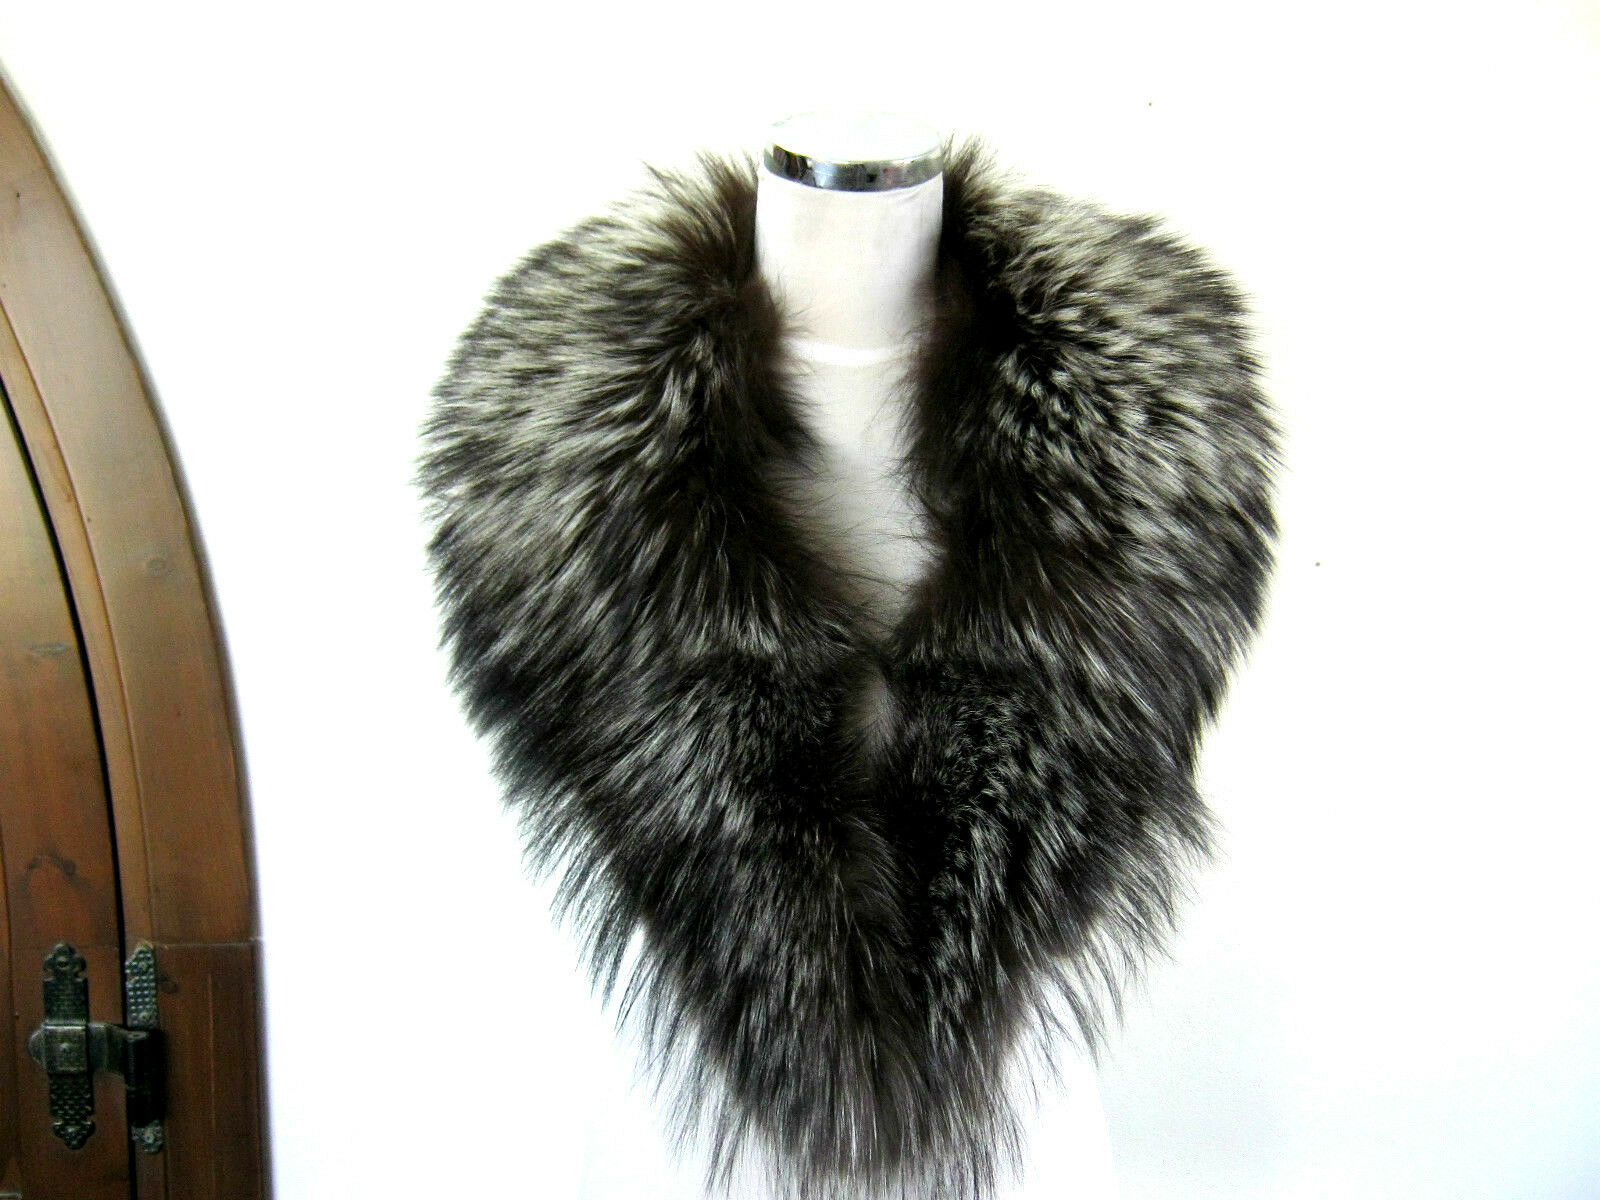 VOLPE silverATA FRABA Pelliccia NUOVA NEW FOX Real Fur ORIGINALE